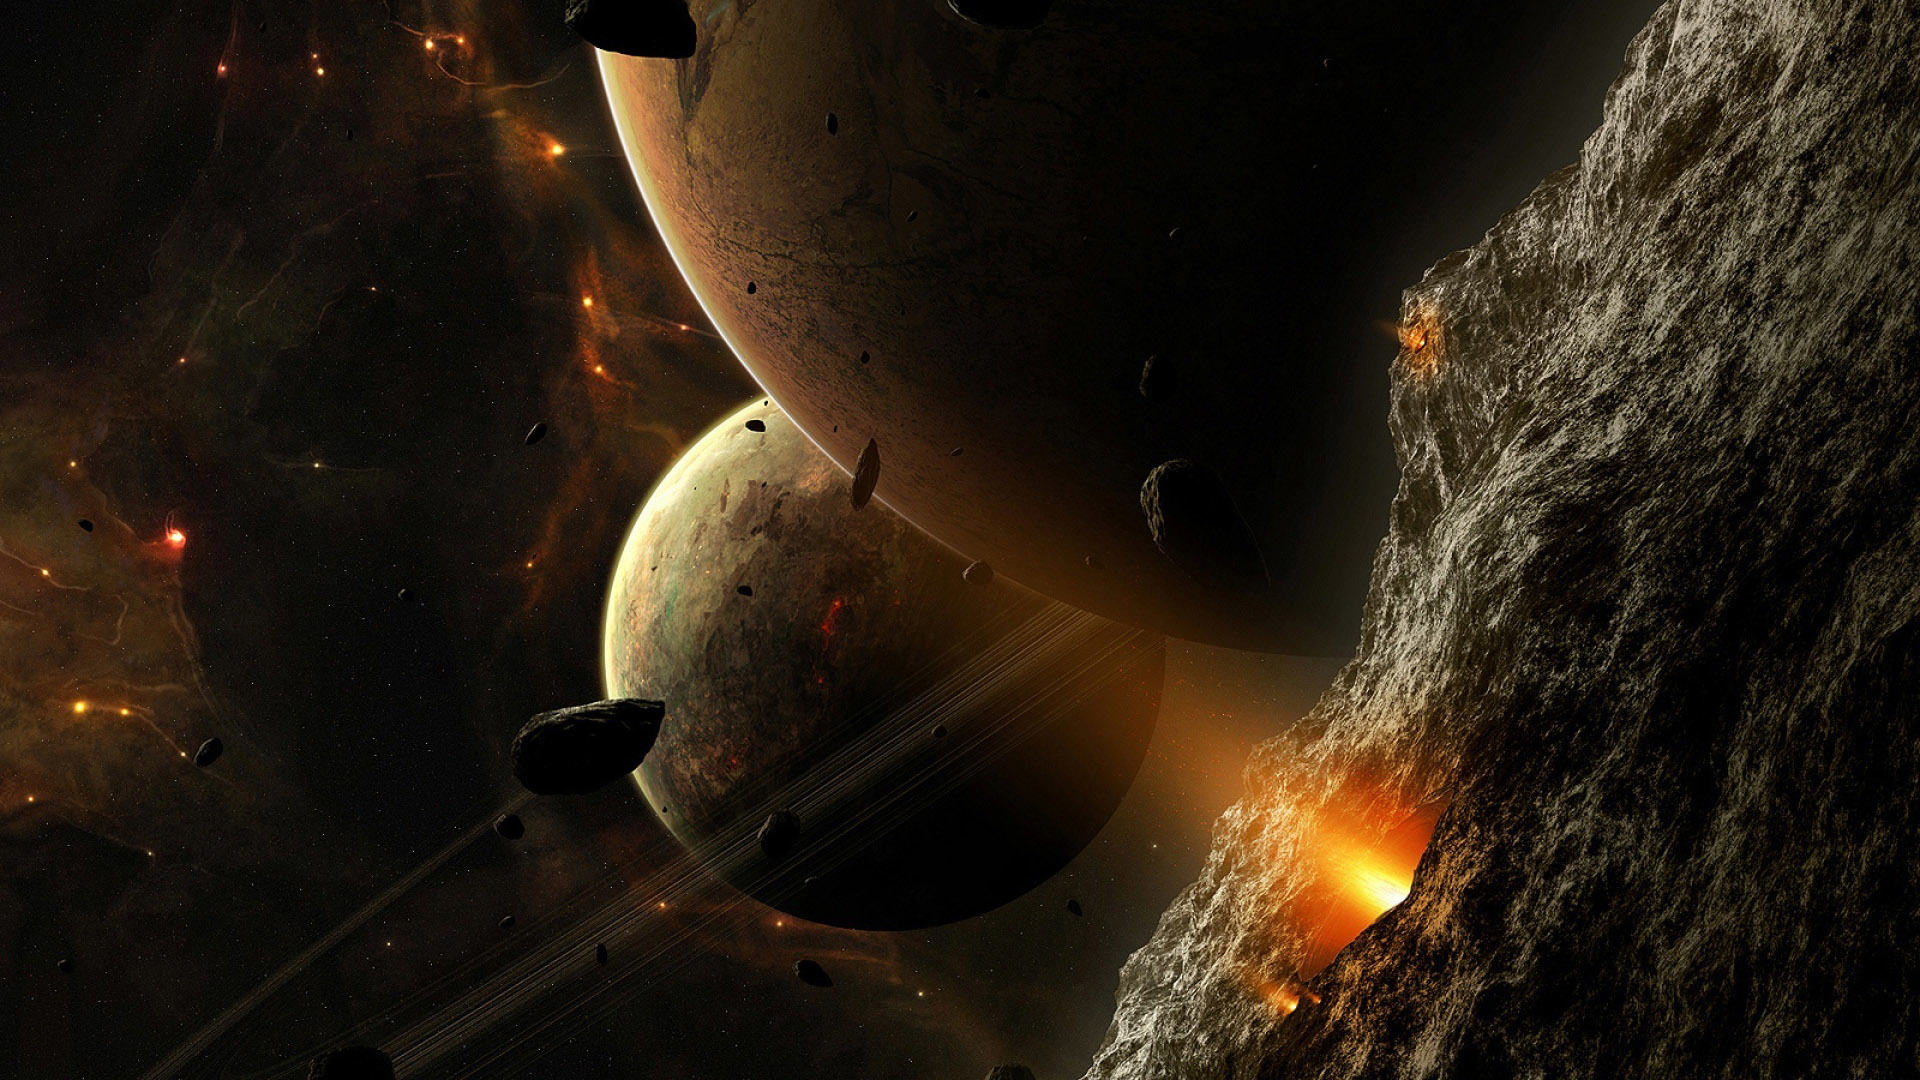 42395 download wallpaper Fantasy, Planets screensavers and pictures for free